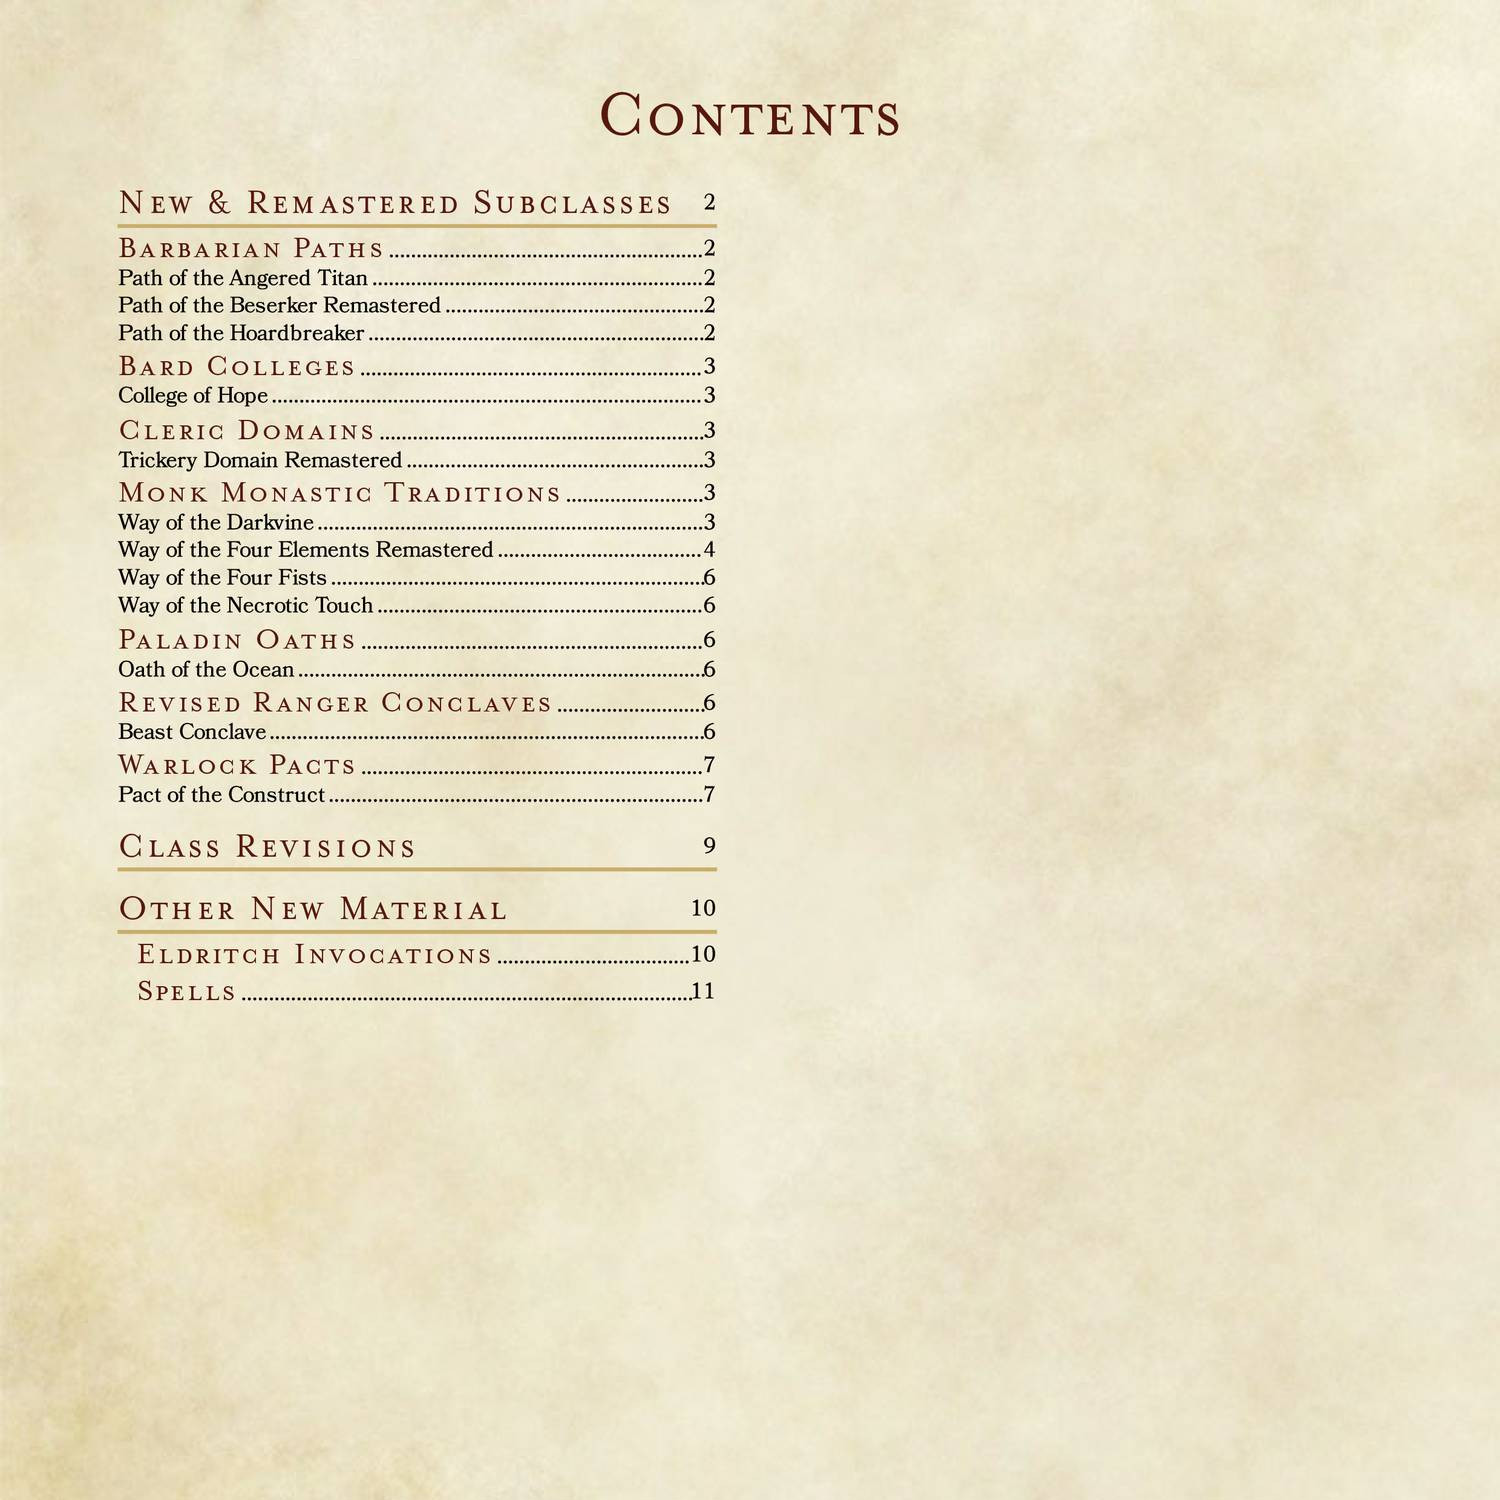 Glorian Strifle's New 5eD&D Material pdf | DocDroid